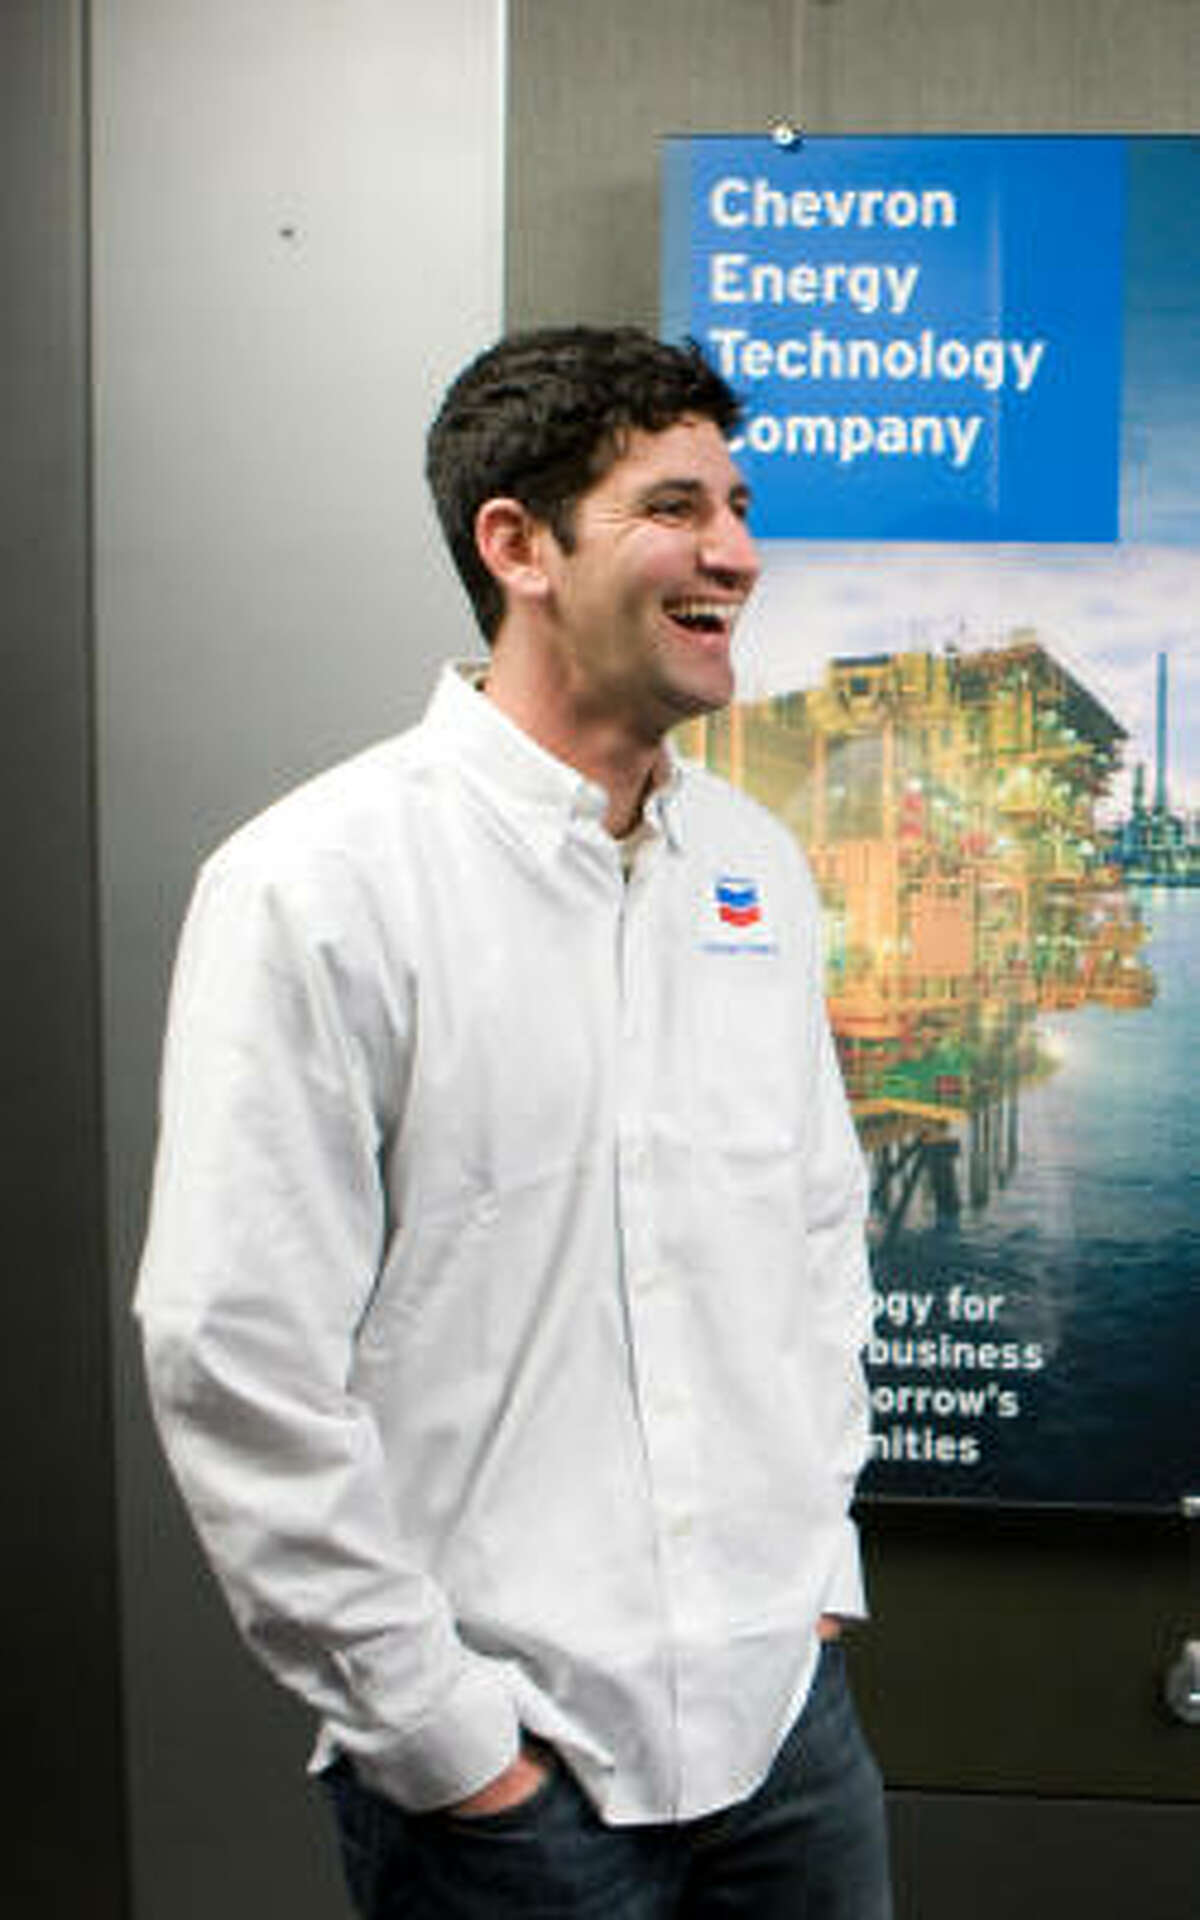 Daniel Seddiqui is spending a week with Chevron as a part of his quest to visit 50 jobs in 50 different states.